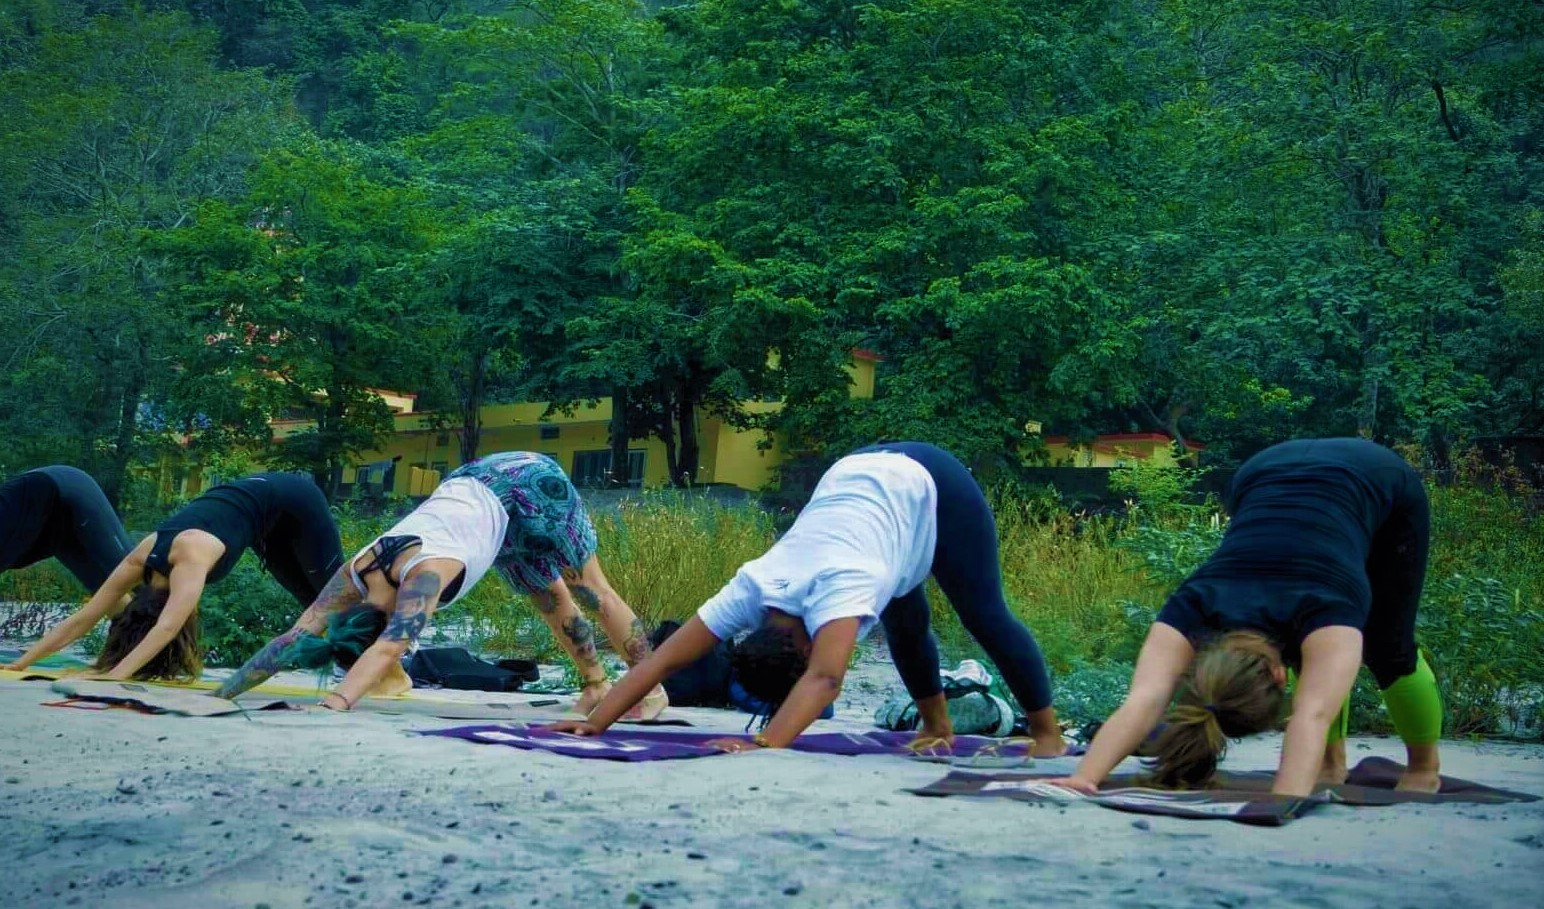 082316outdooryogaretreatrishikeshindia.jpg